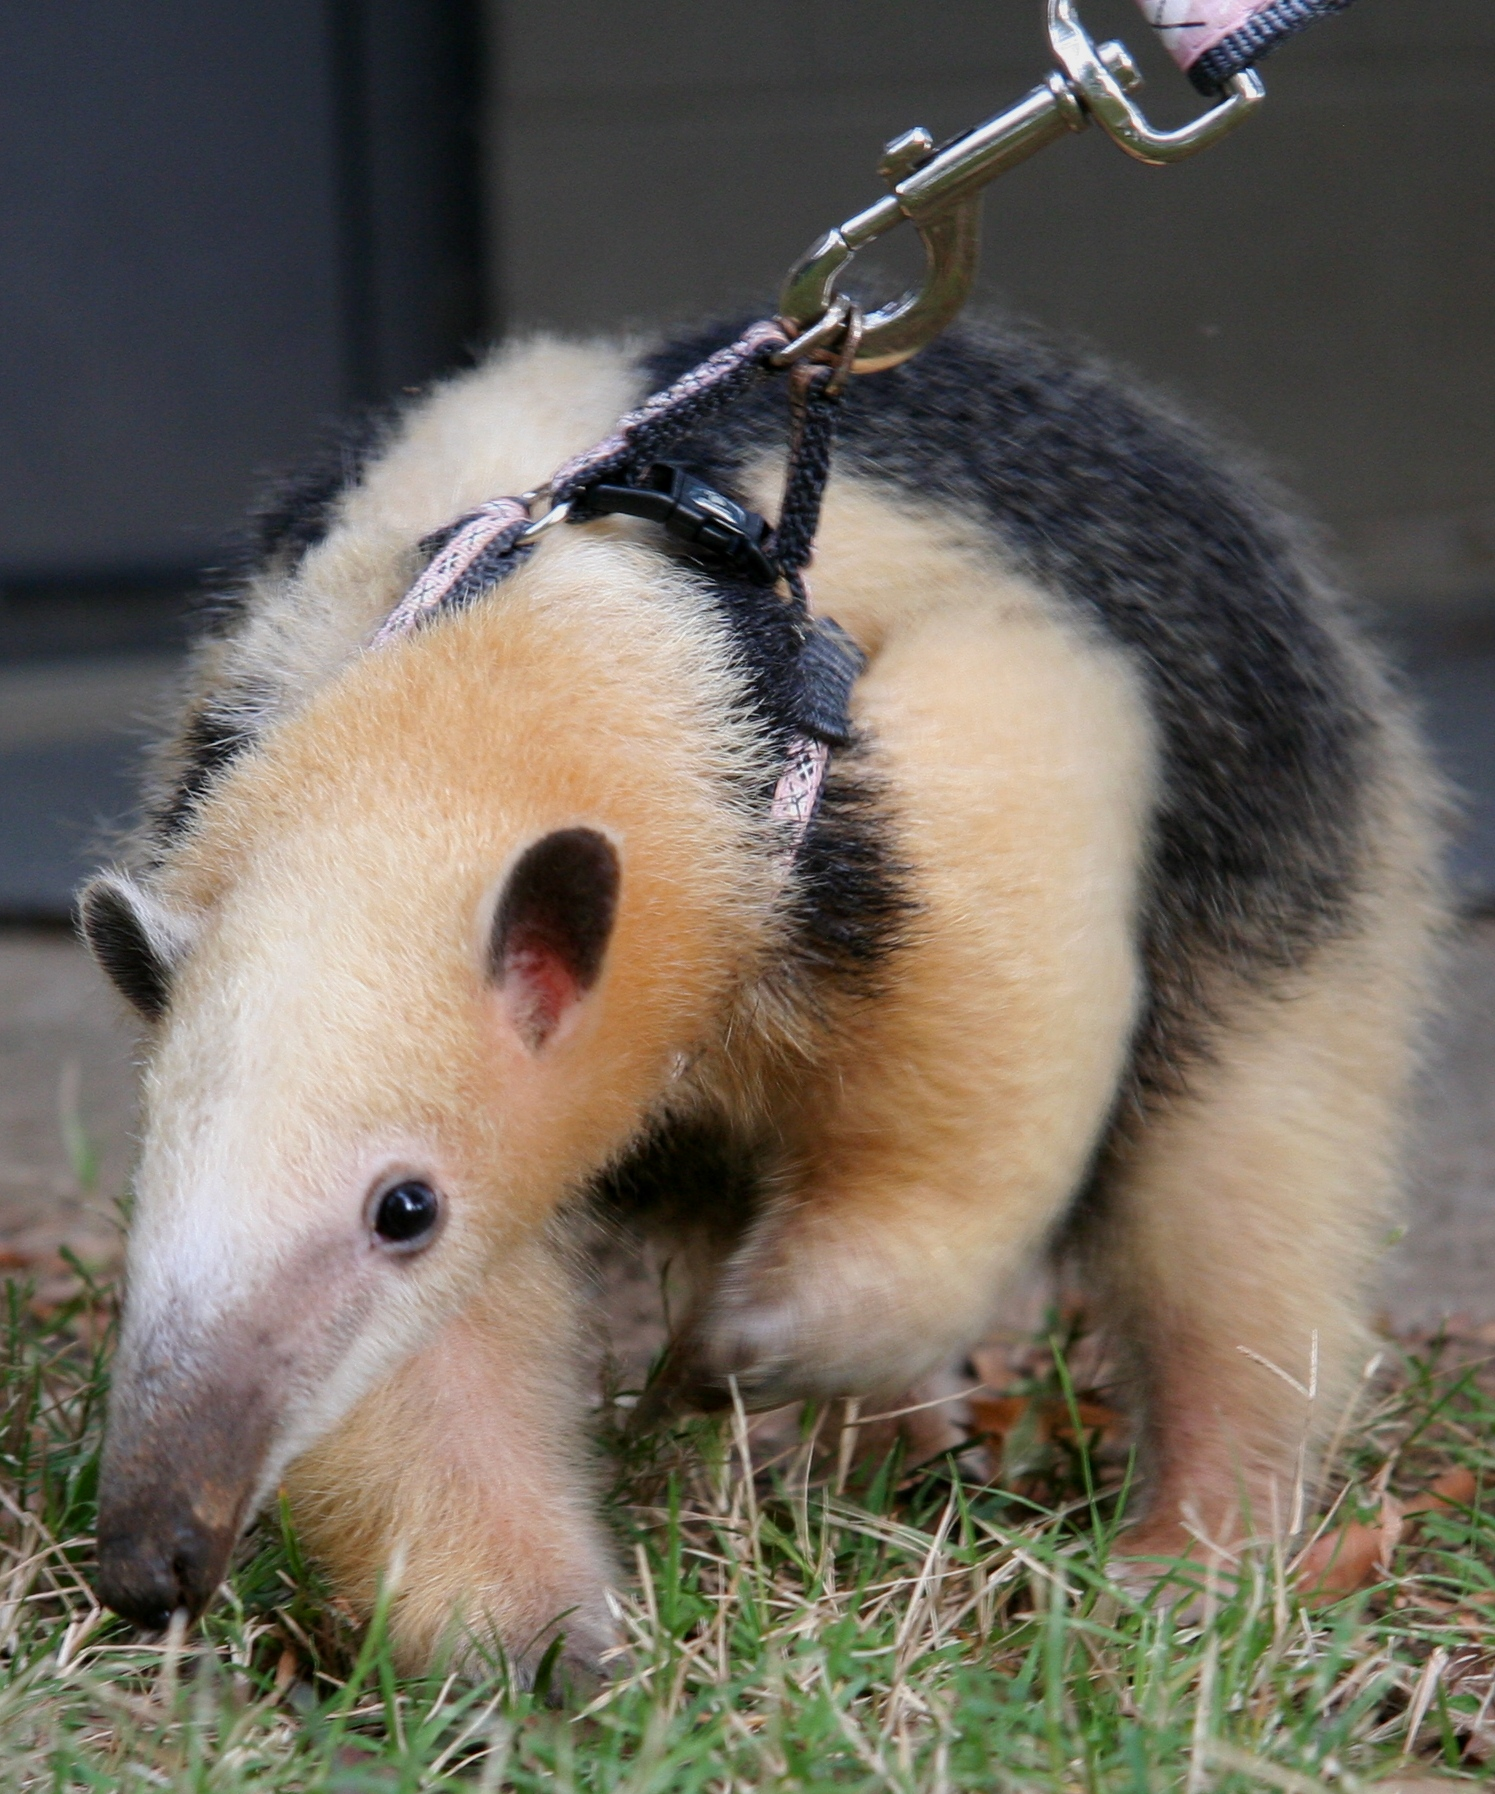 Tamandua walkies